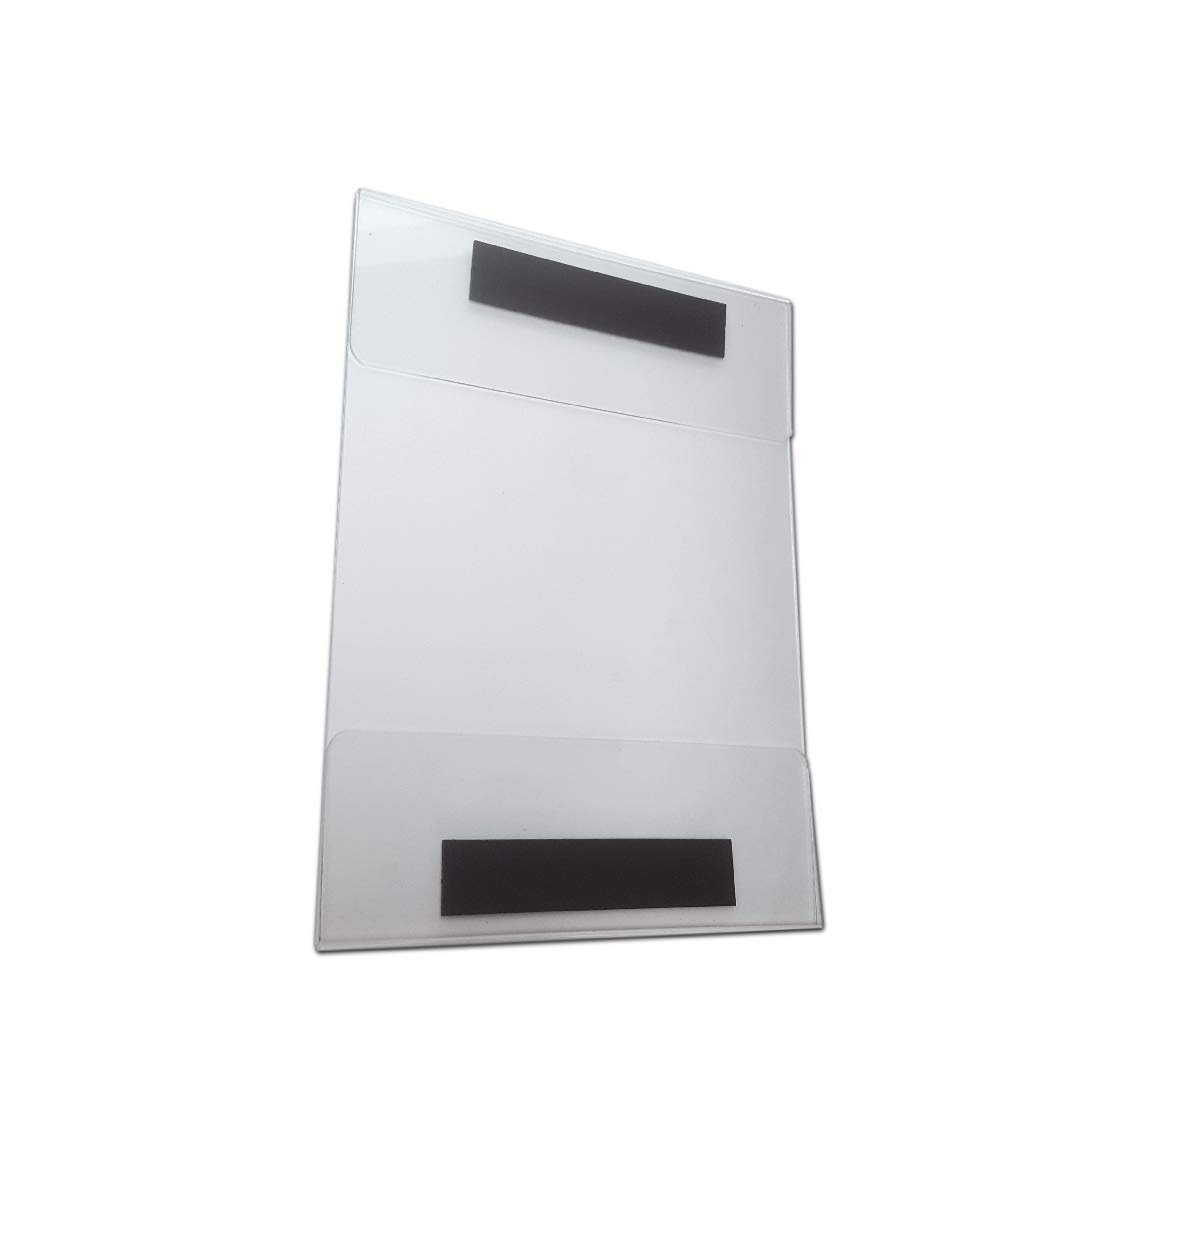 T'z Tagz Strong Magnetic Universal Acrylic Photo Picture Frames 5x7 Vertical or 7x5 Horizontal Applications (12)